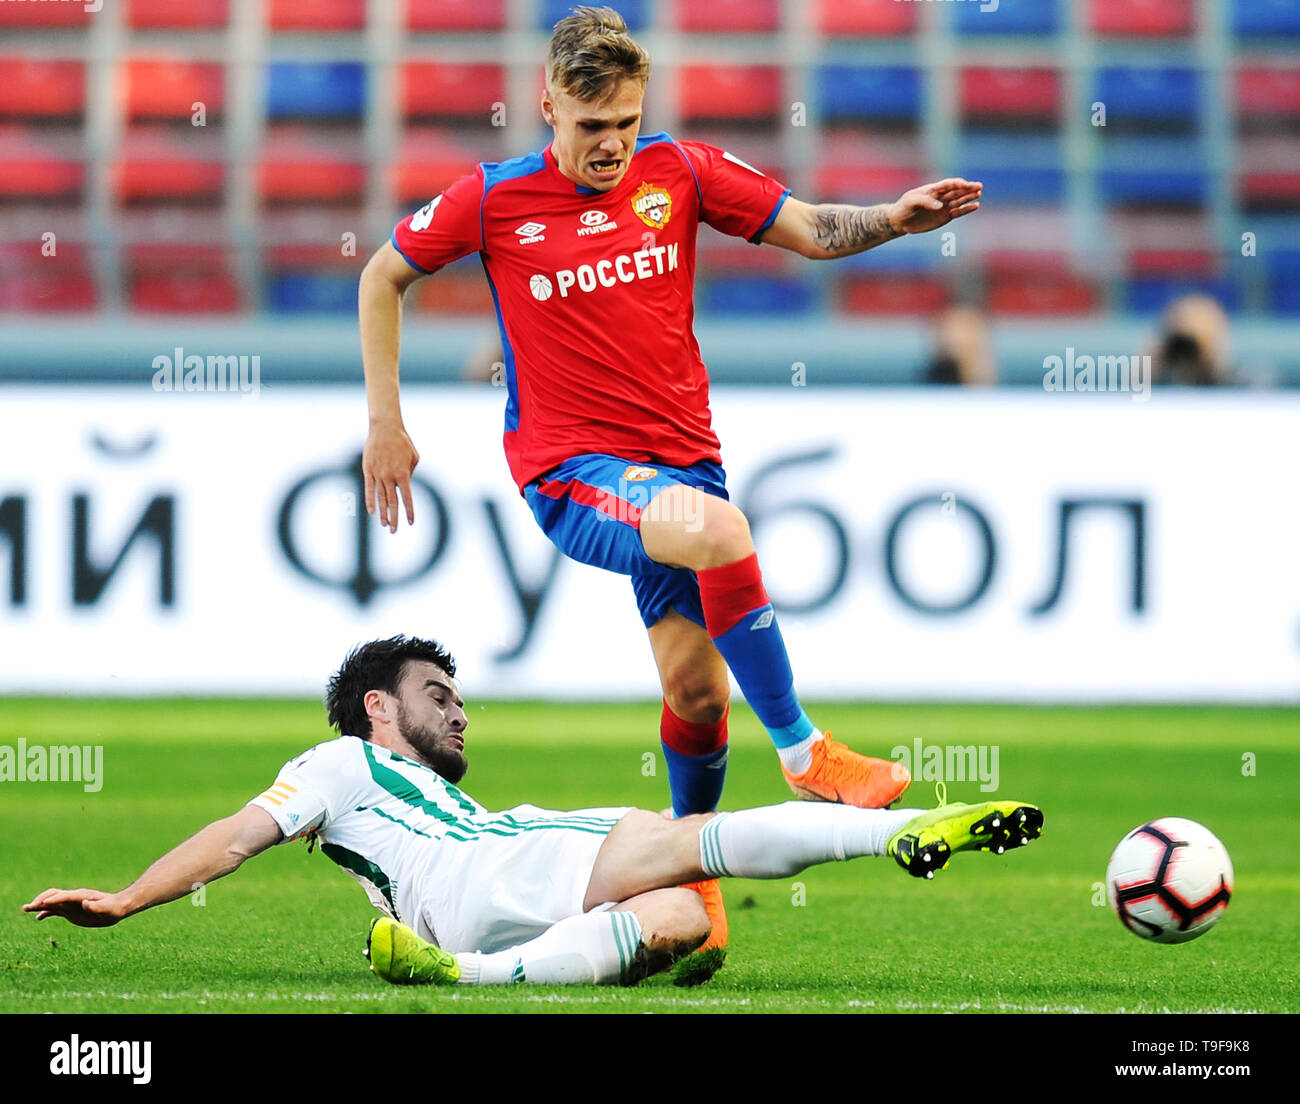 Moscow, Russia. 18th May, 2019. MOSCOW, RUSSIA - MAY 18: Arnor Sigurdsson of PFC CSKA Moscow and Rizvan Utsiyev of FC Akhmat Grozny vie for the ball during the Russian Football League match between PFC CSKA Moscow and FC Akhmat Grozny at Arena CSKA stadium on May 18, 2019 in Moscow, Russia. (Photo by Epsilon/Getty Images) Credit: ITAR-TASS News Agency/Alamy Live News - Stock Image